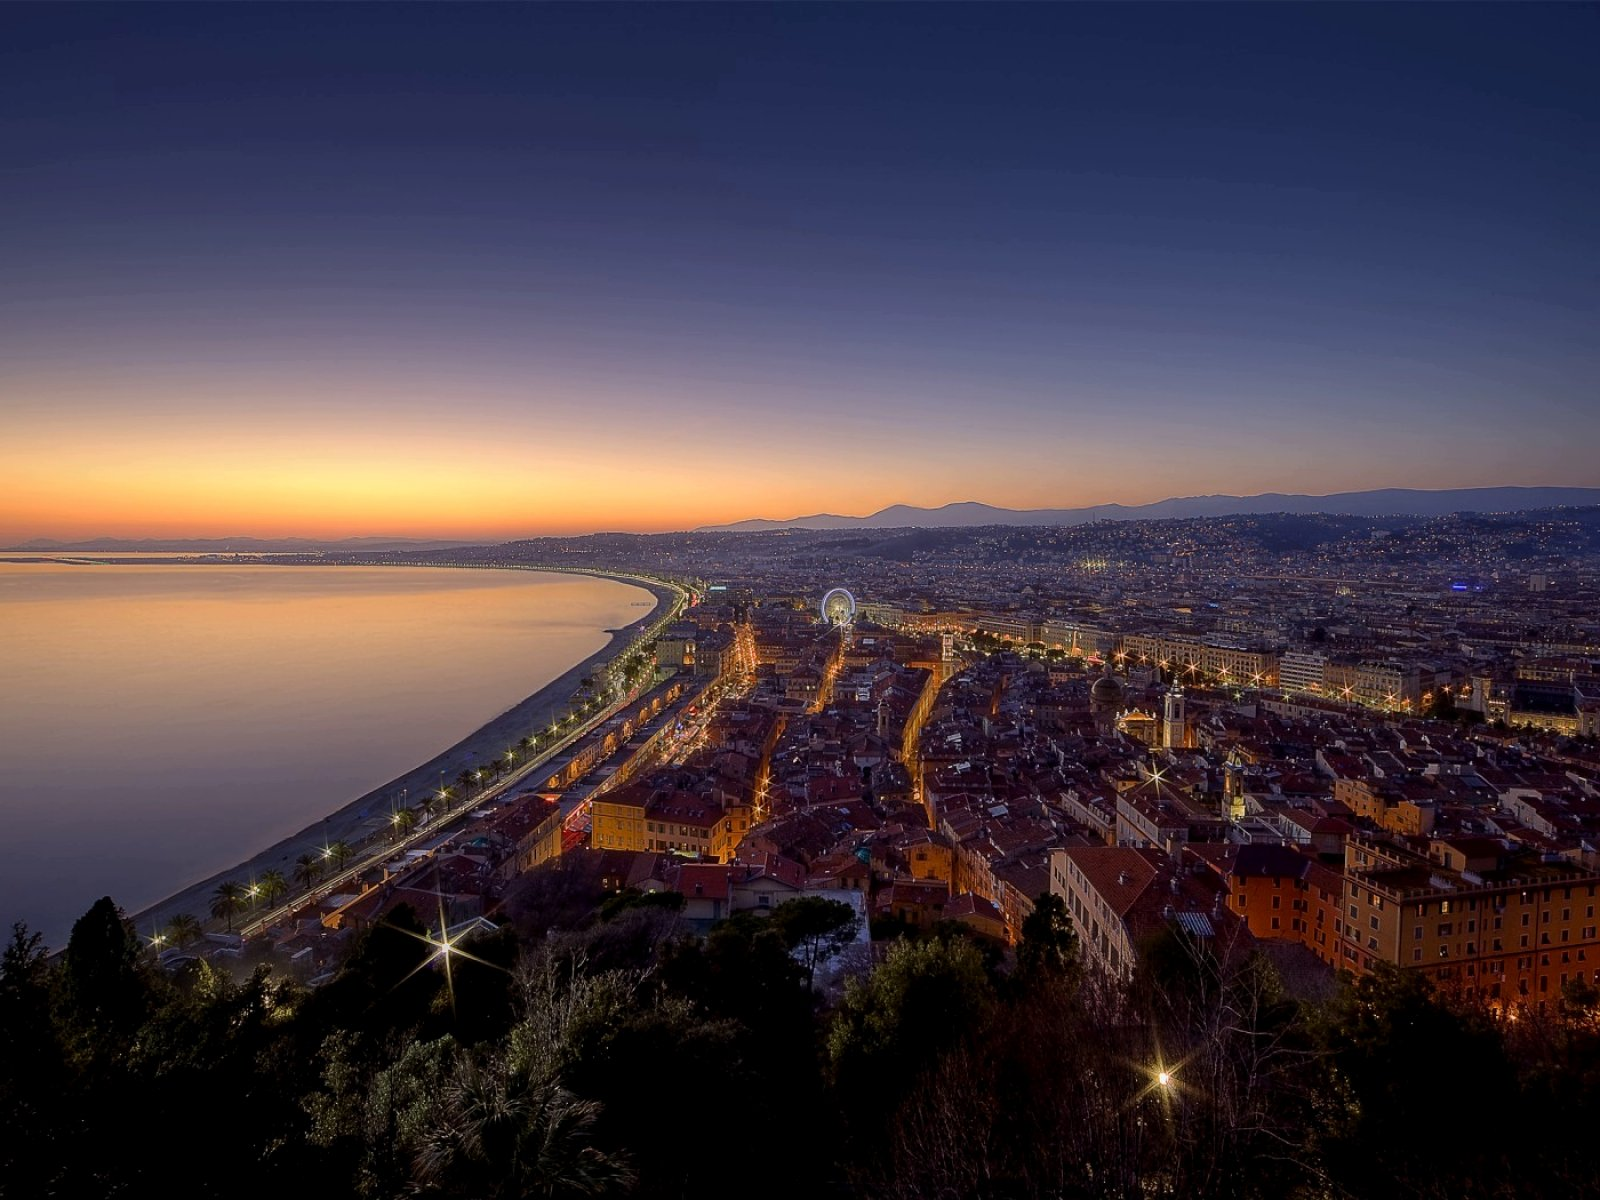 How to see the sunset from the top of Castle Hill in Nice